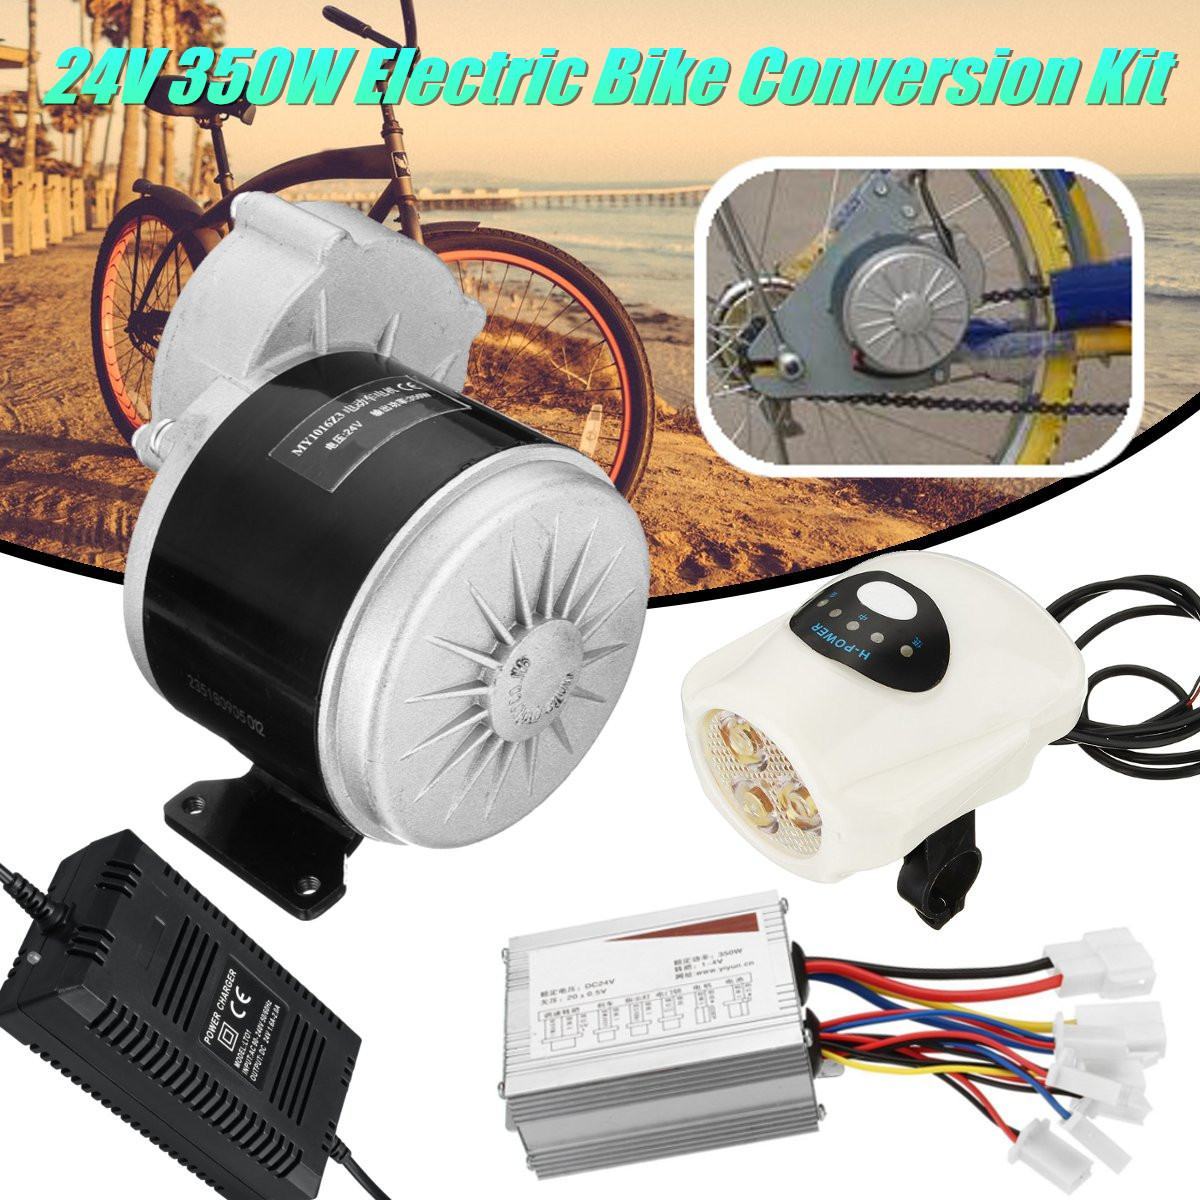 цена на Electric Bicycle Conversion Kit 24V 350W Brushed DC Motor For 22-28 Inch DIY Electric Bike Conversion Kit With Controller